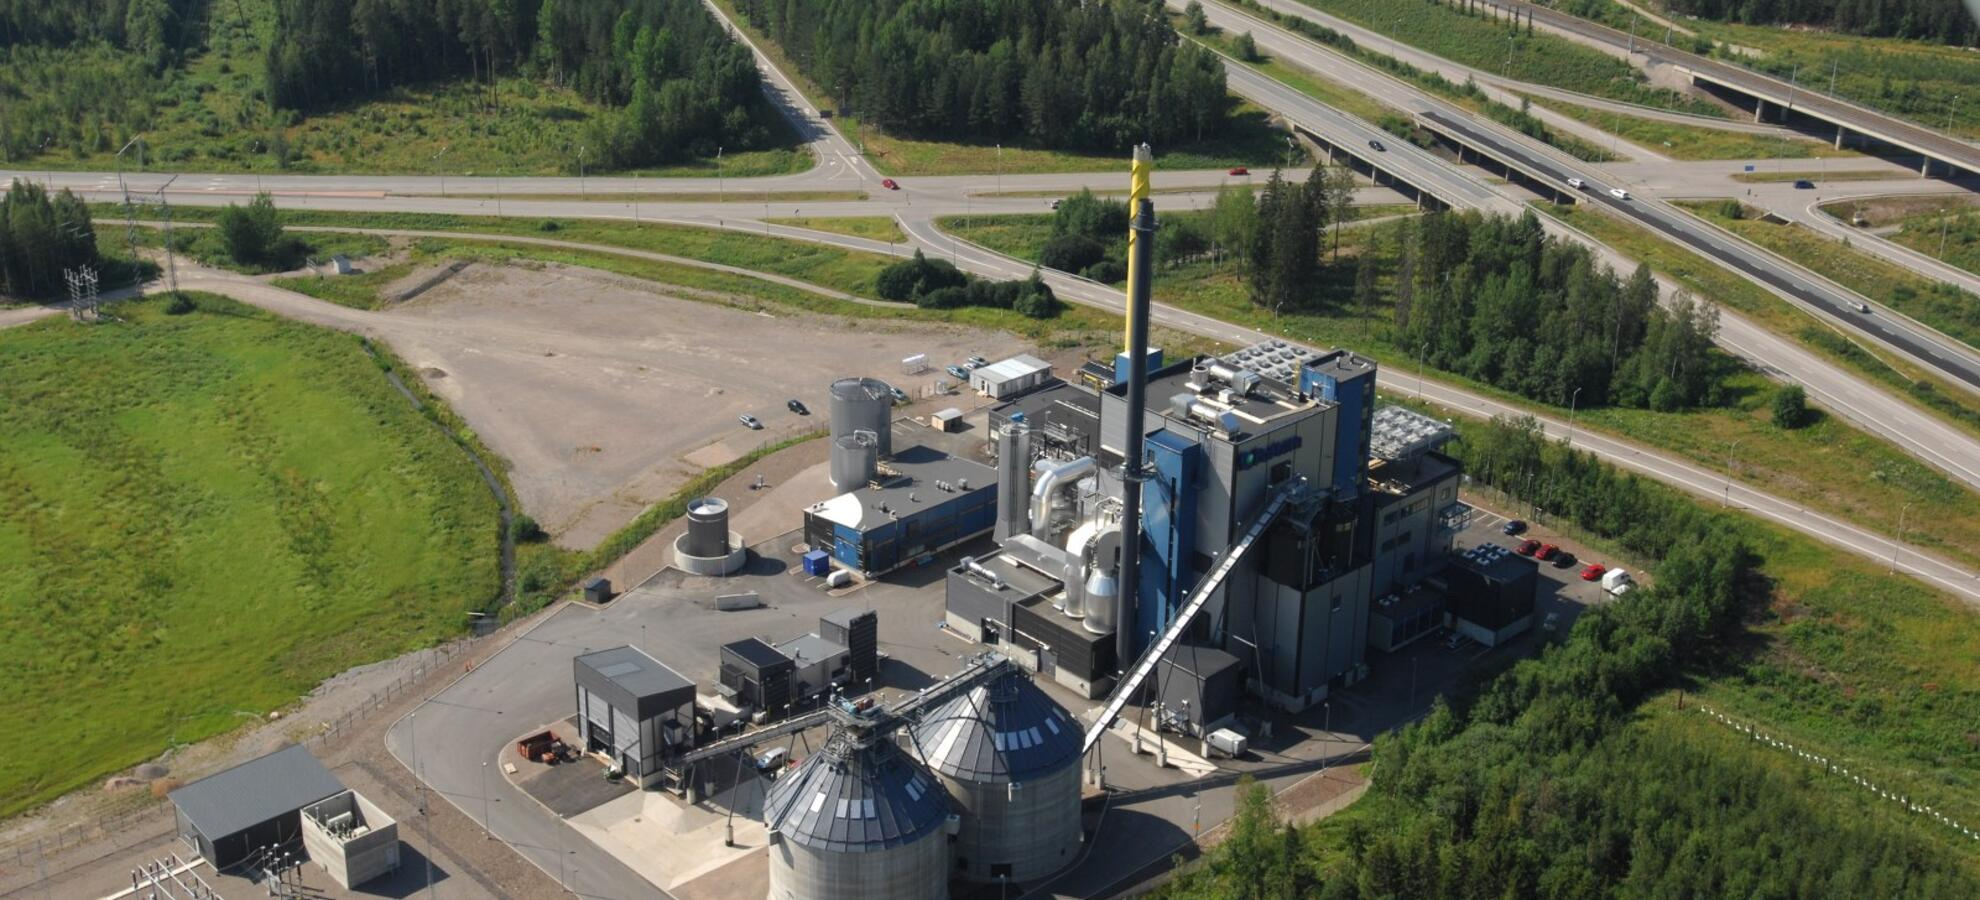 Our Power Plants Fortum Out In The Stadium Battery Is Source Of Electricity Jrvenp Chp Plant